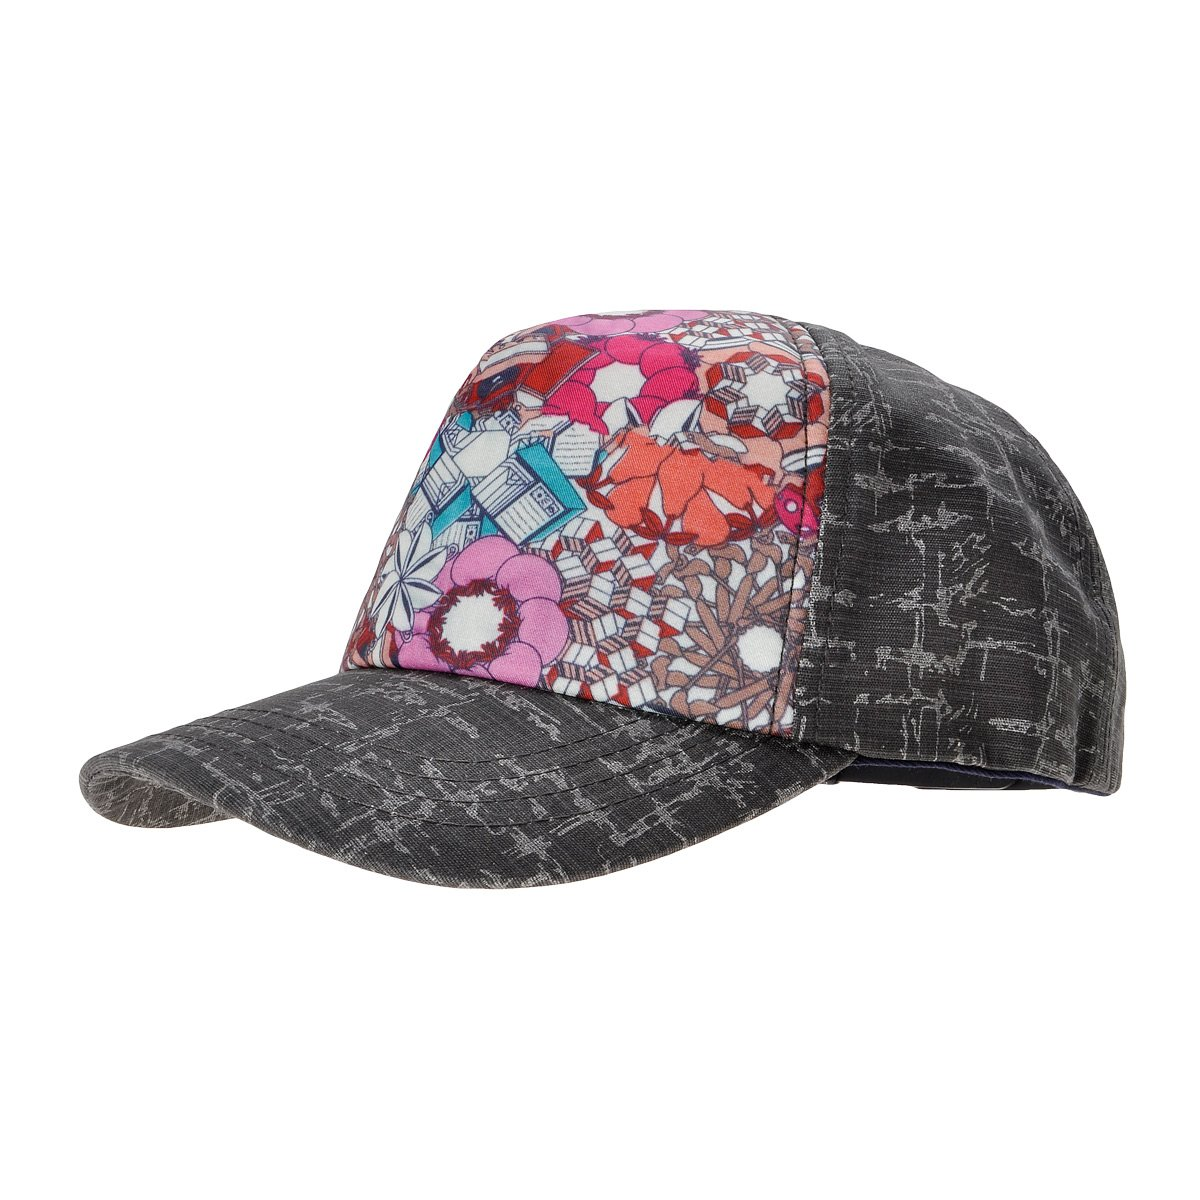 ZLYC Women's Tow-Tone Floral Texture Pattern Baseball Adjustable Hat Cap Blue ZYJ-MZ-125-BL